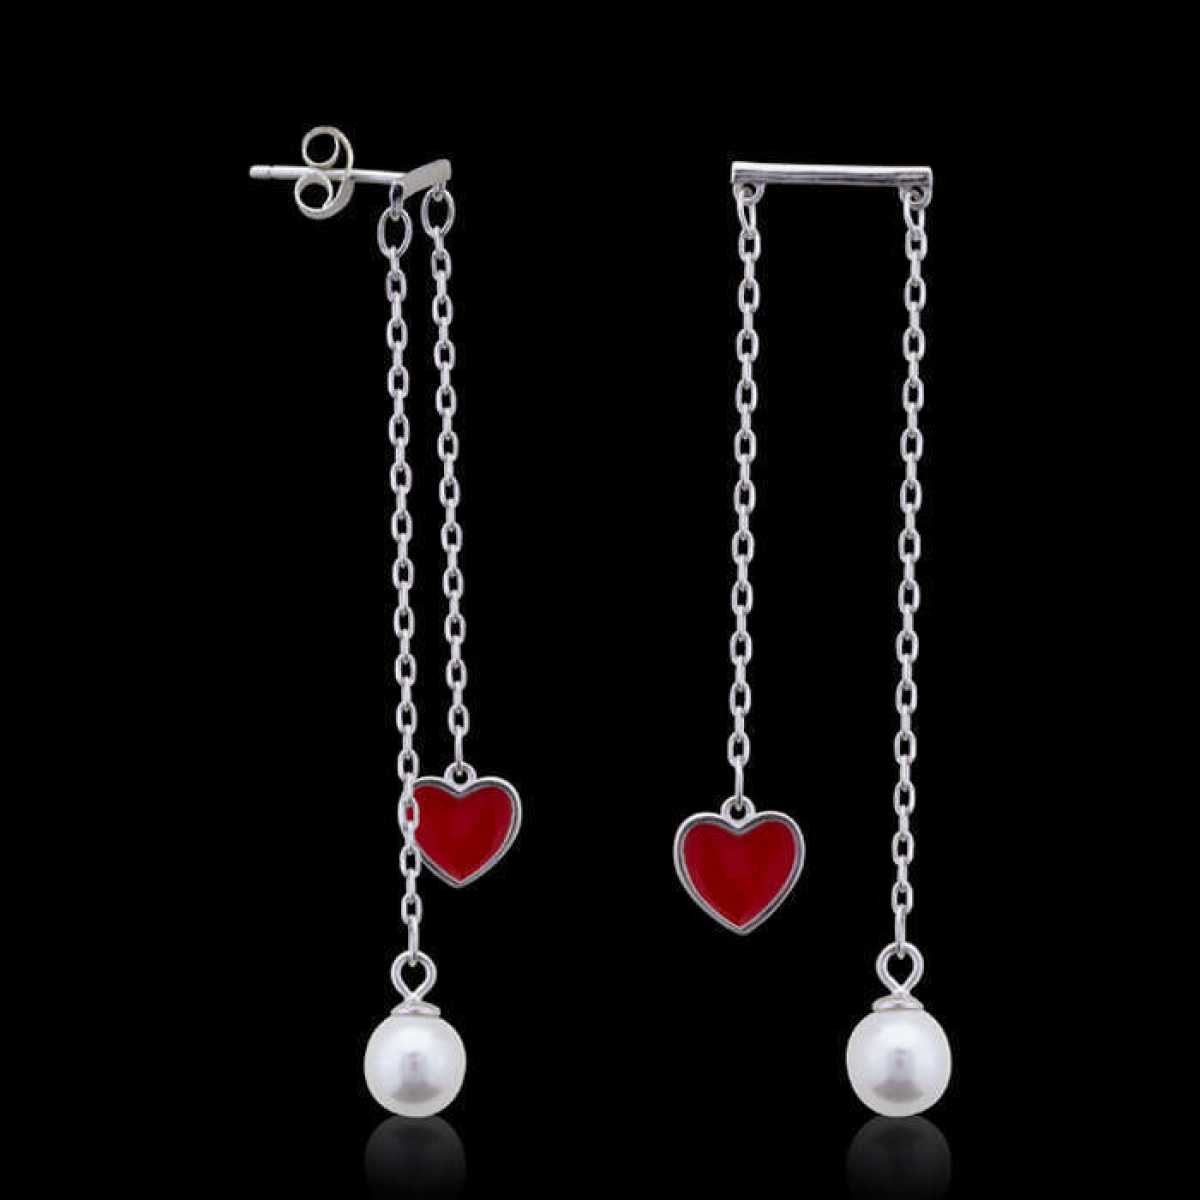 Read Love Heart With Pearl Silver Earring